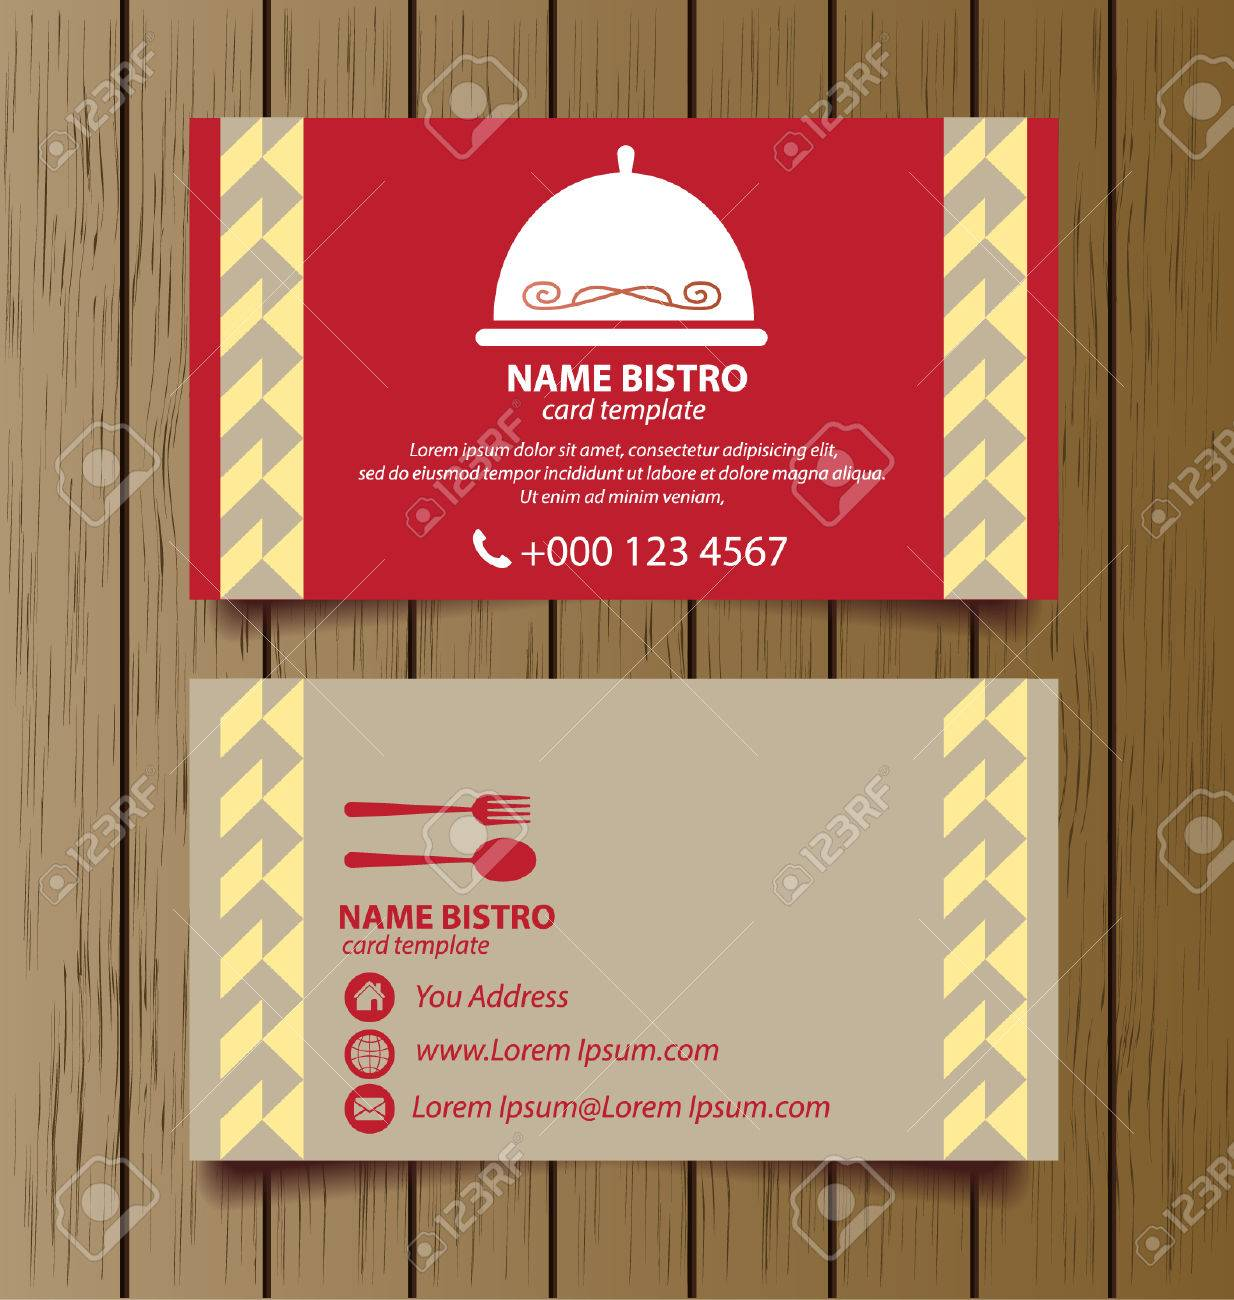 Business card template for restaurant business royalty free cliparts business card template for restaurant business stock vector 27785633 flashek Gallery